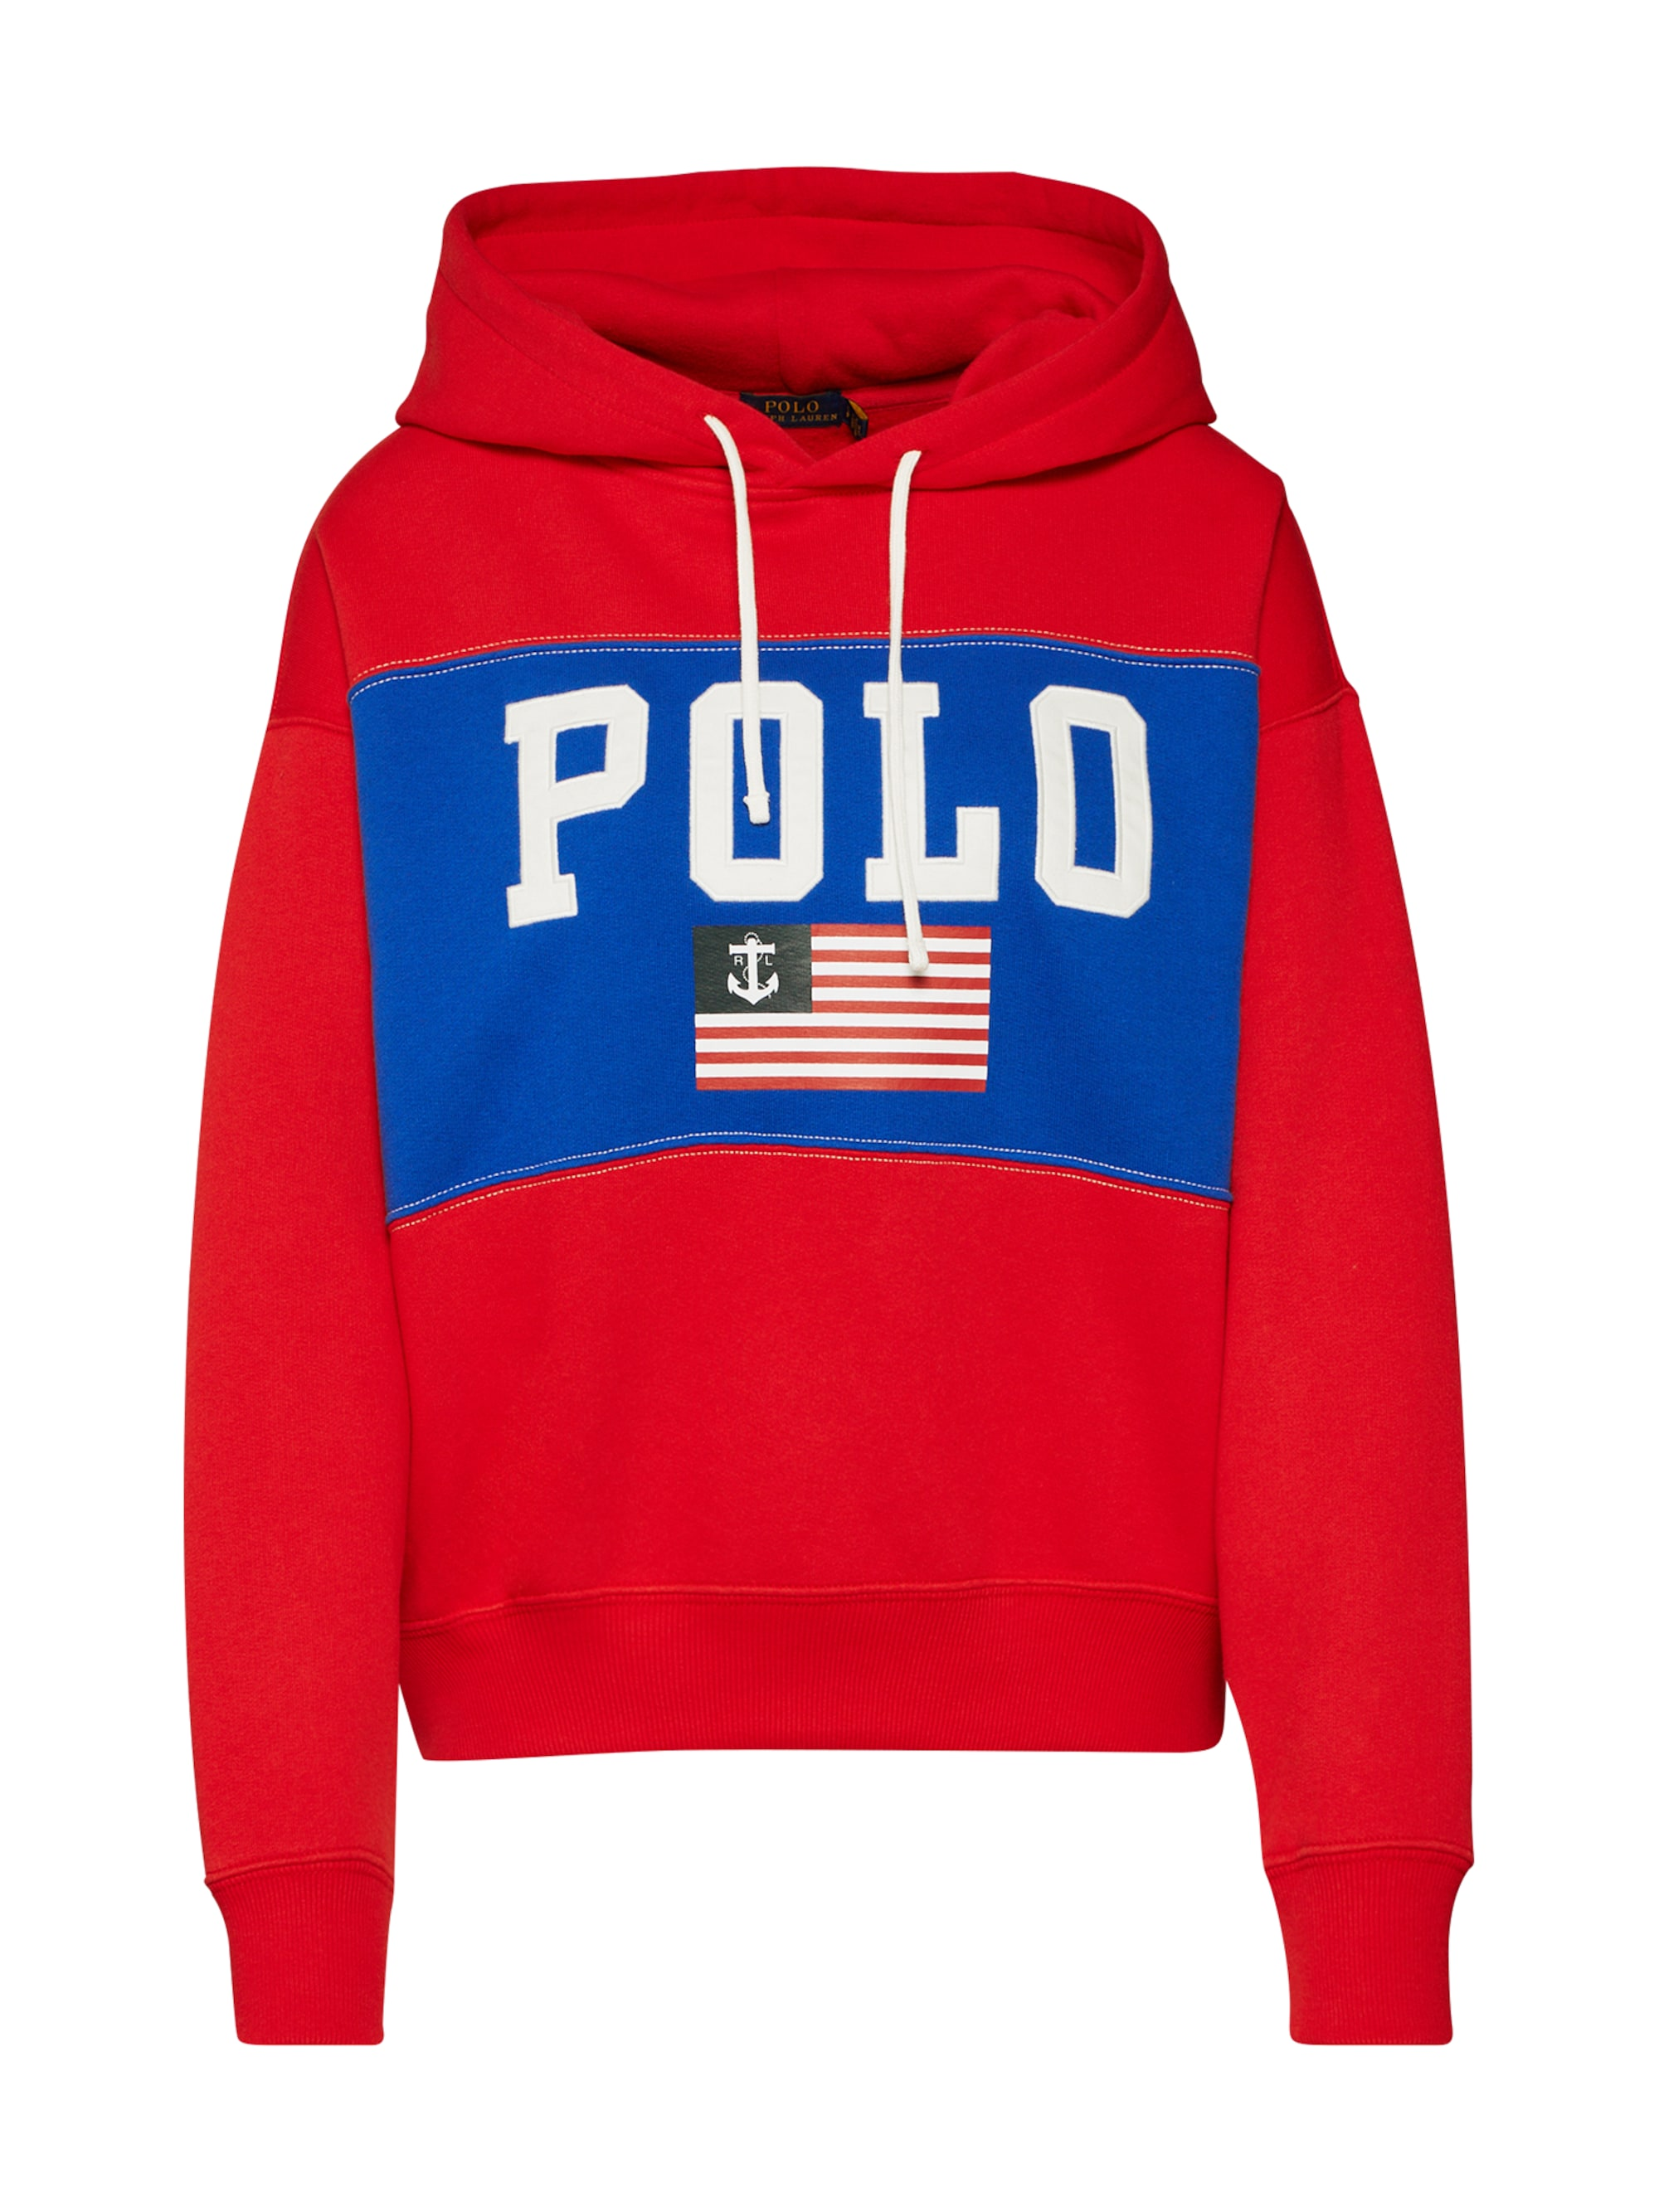 polo ralph lauren - Sweatshirt ´RLXD FLAG HD-LONG SLEEVE-KNIT´